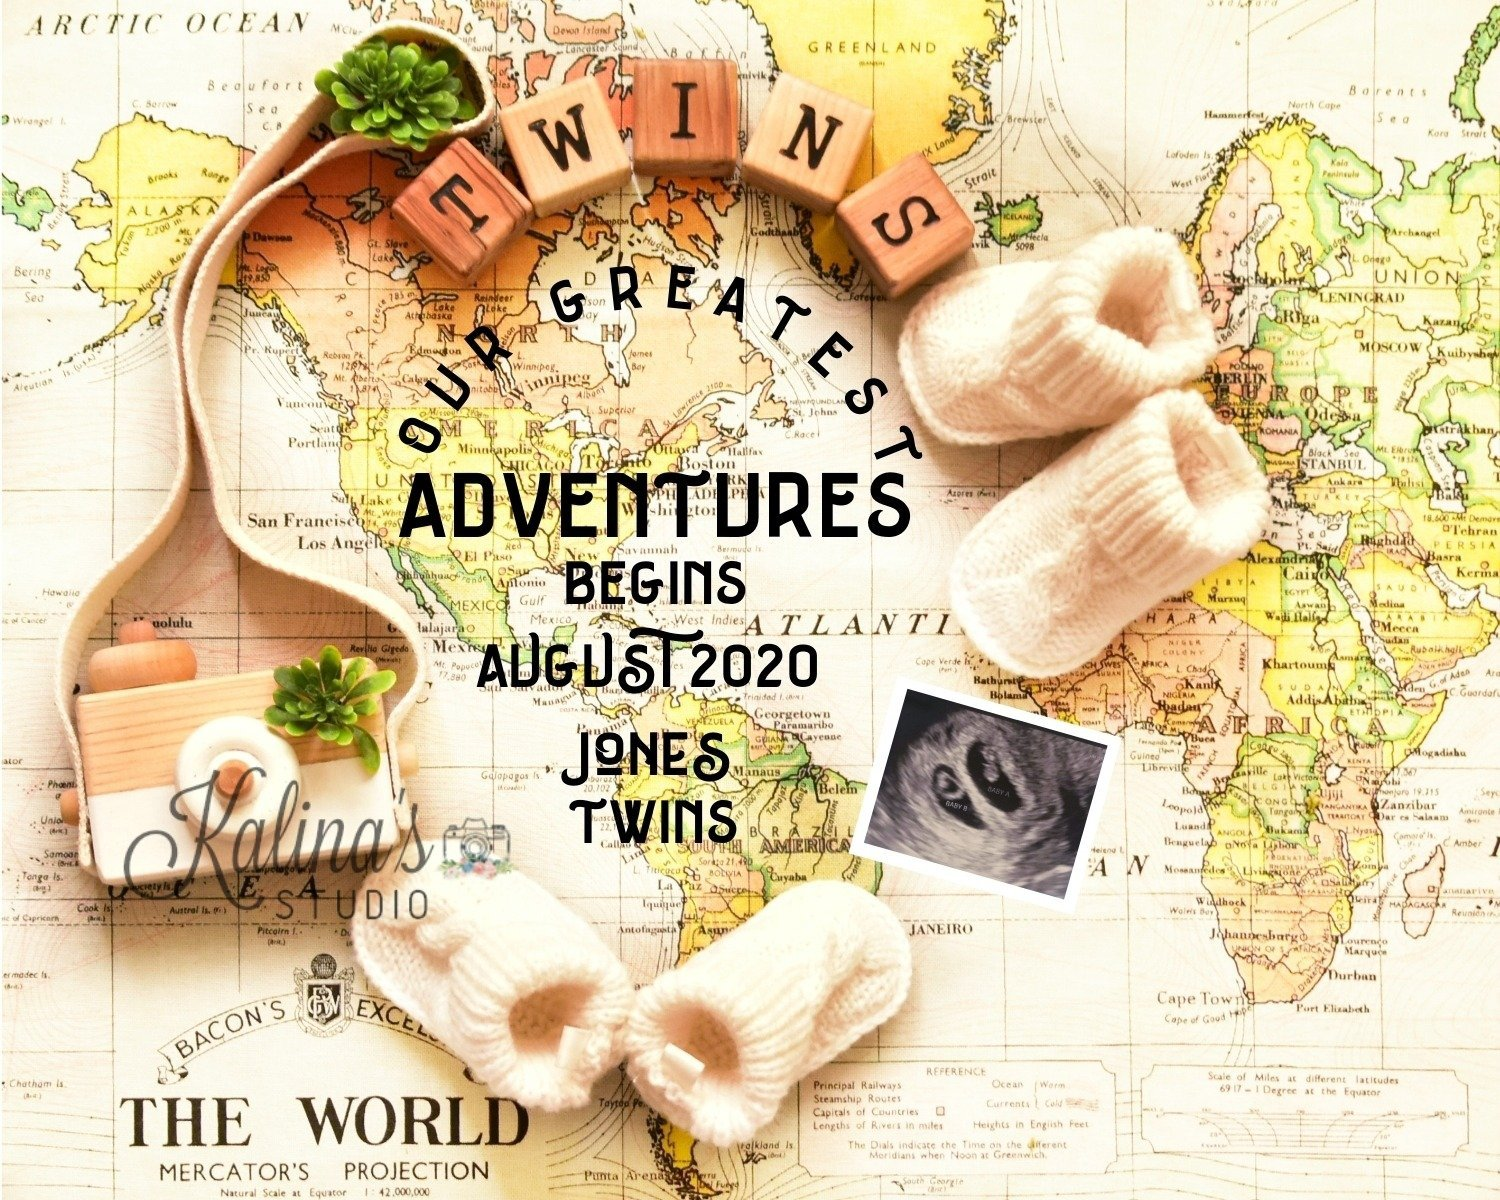 twins-adventure-pregnancy-announcementsocialmedia